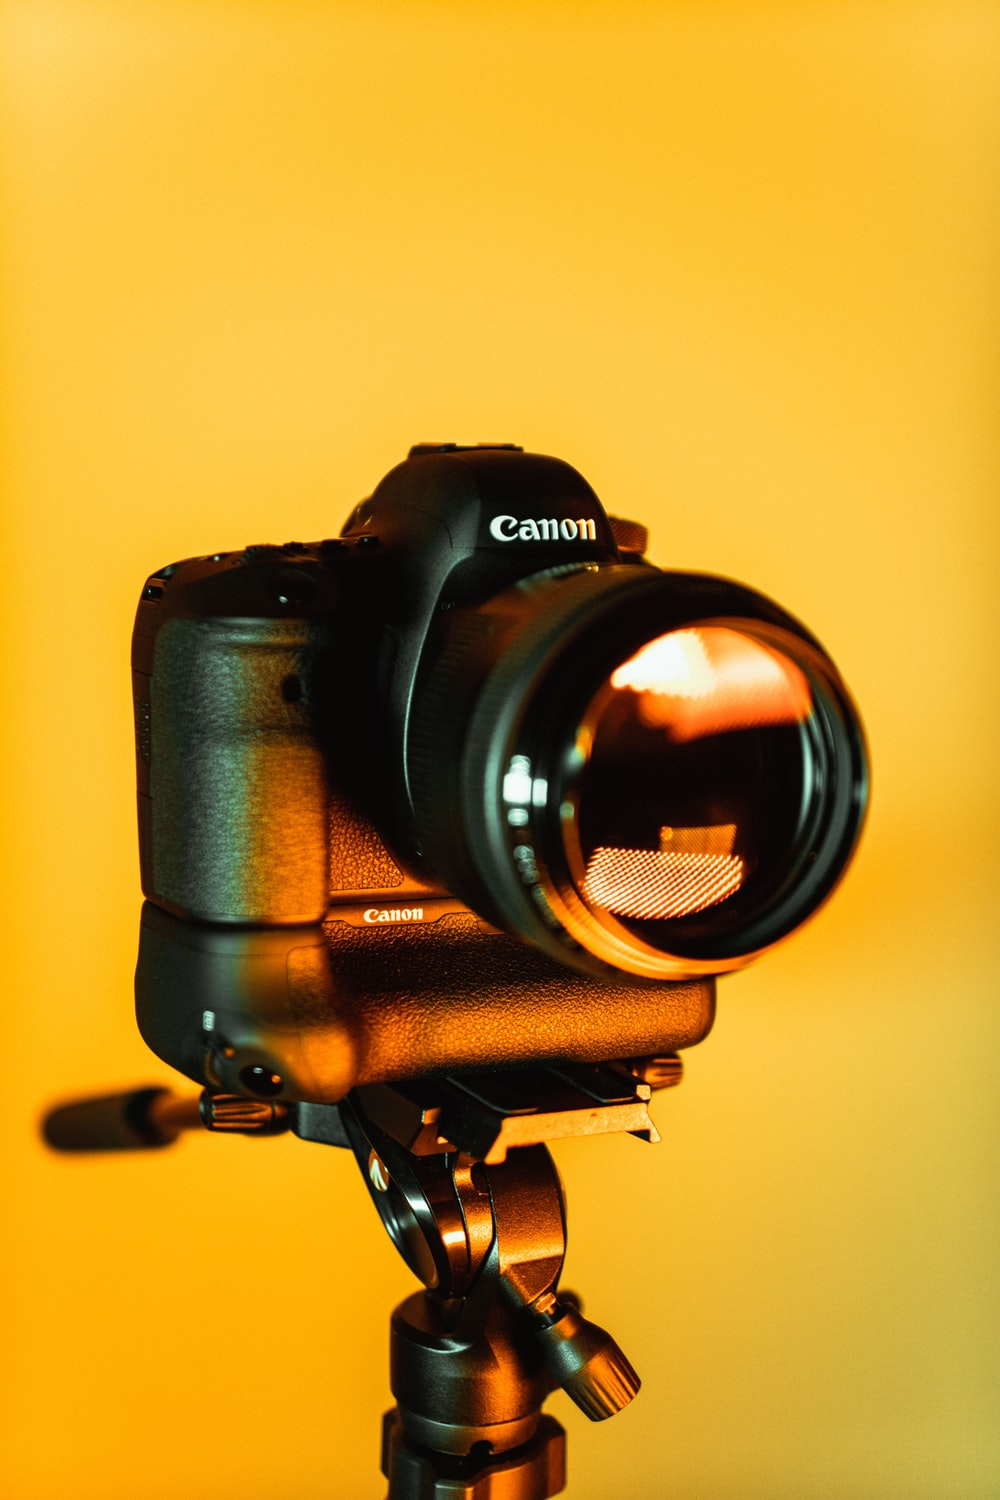 black Canon bridge camera